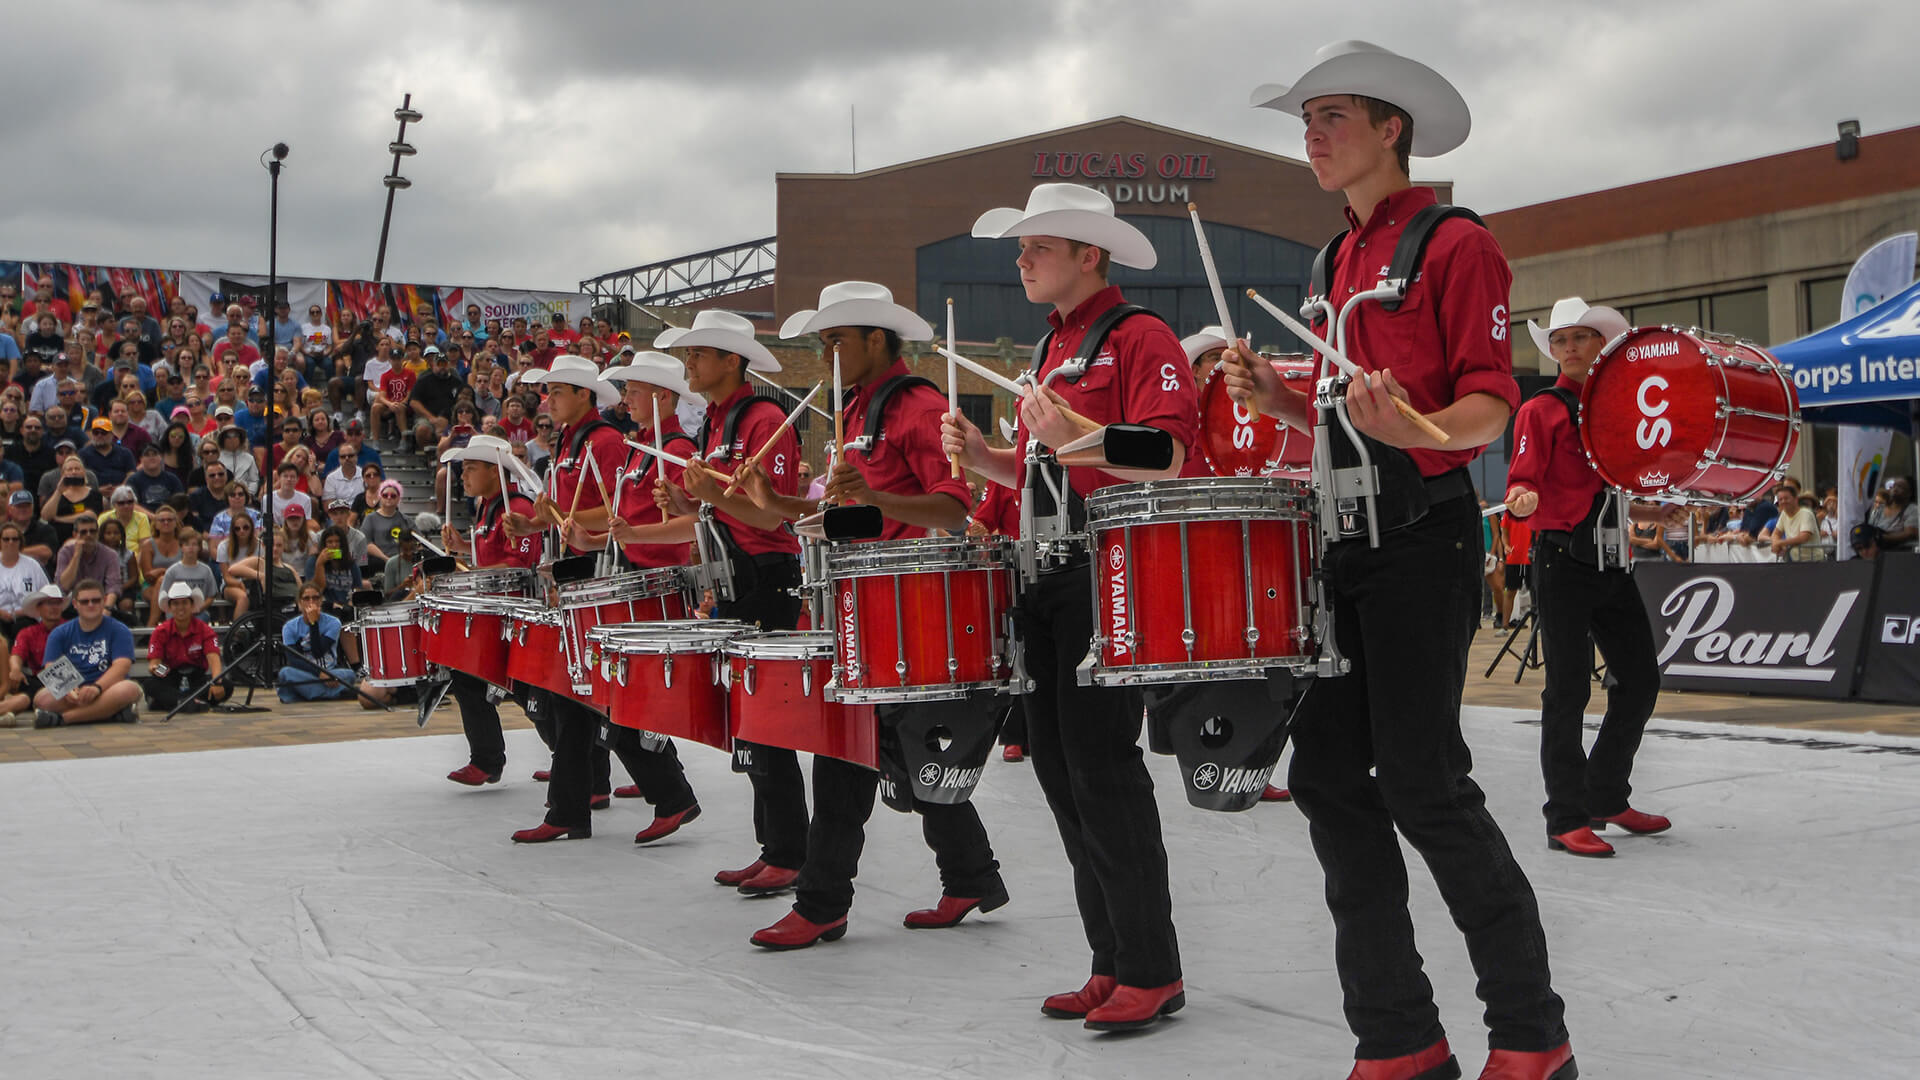 Calgary Stampede taking Indy DrumLine Battle crown back to Canada